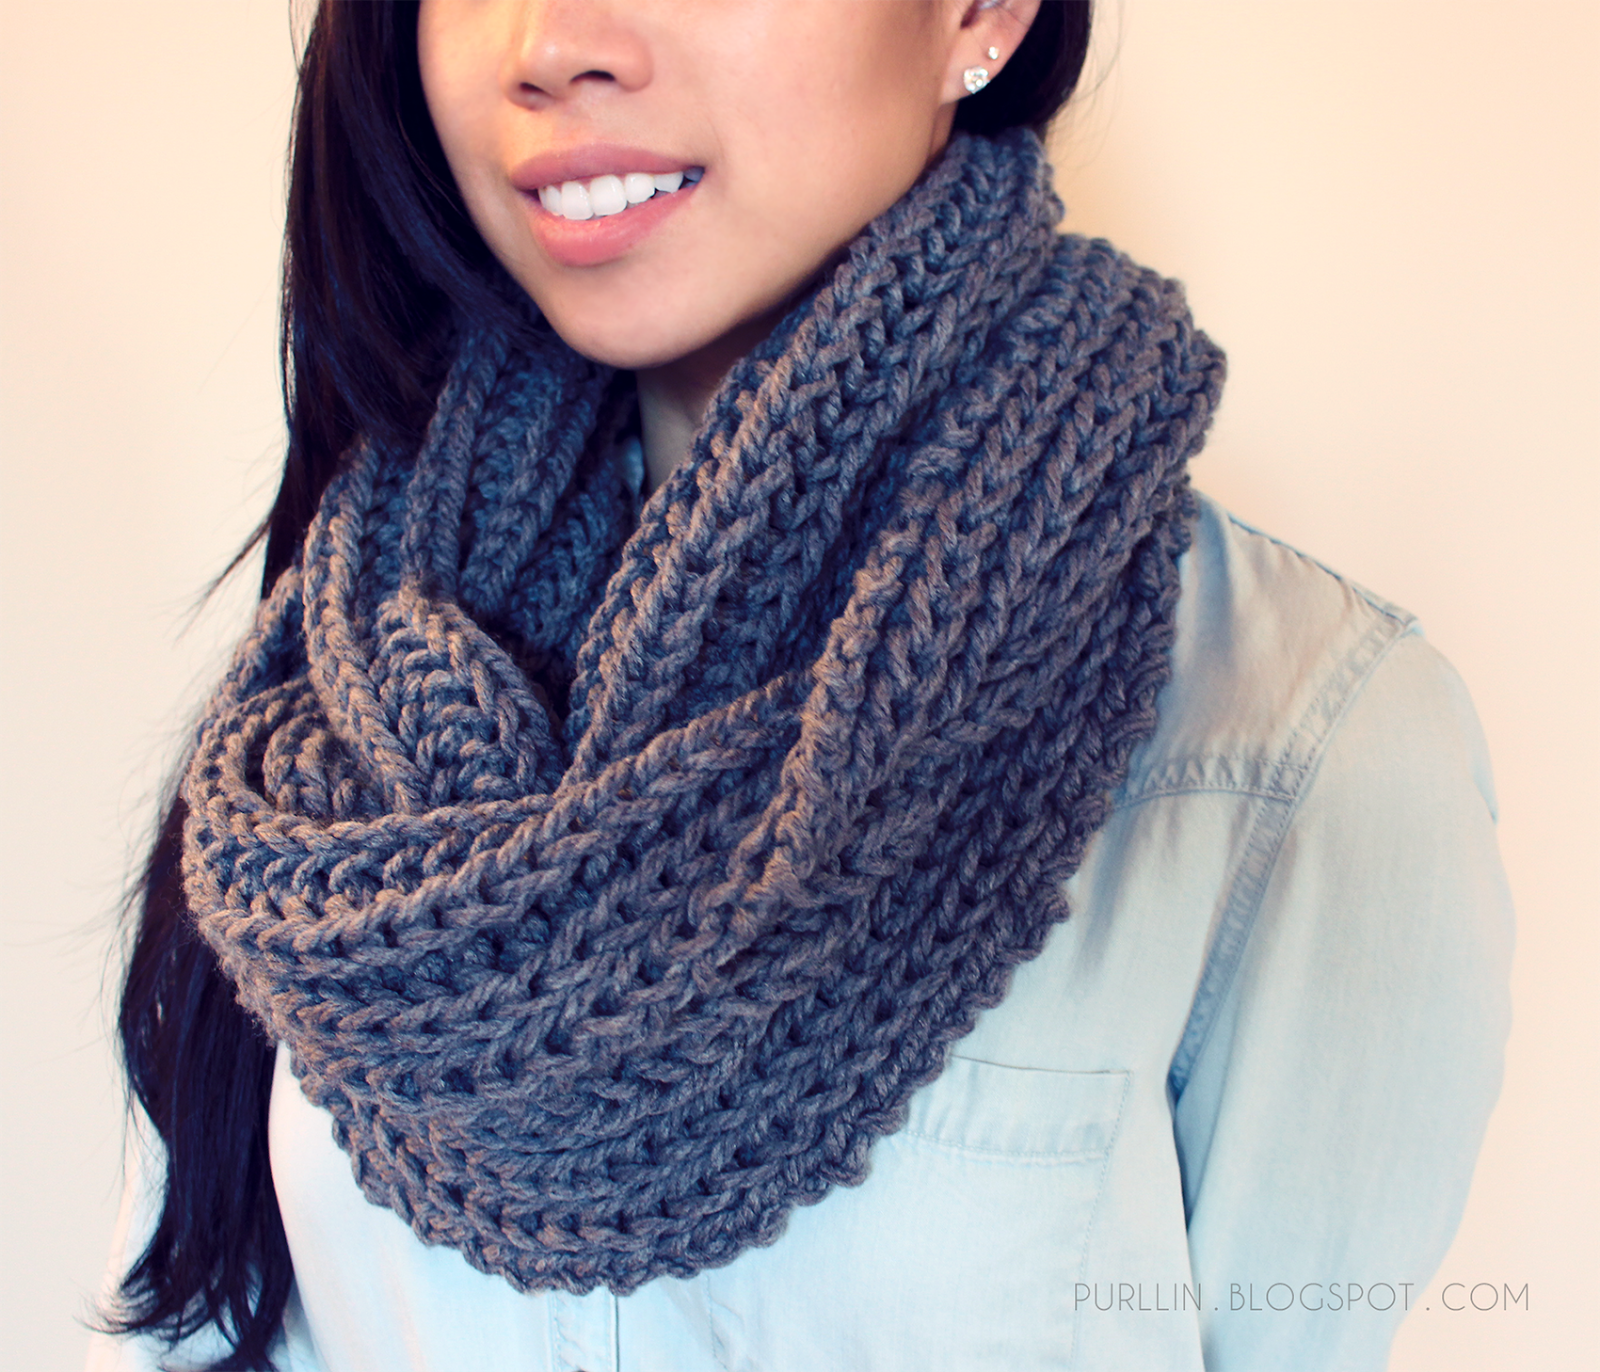 Knitting Pattern Big Scarf : FREE easy beginner knitting pattern for a chunky knit grey ...